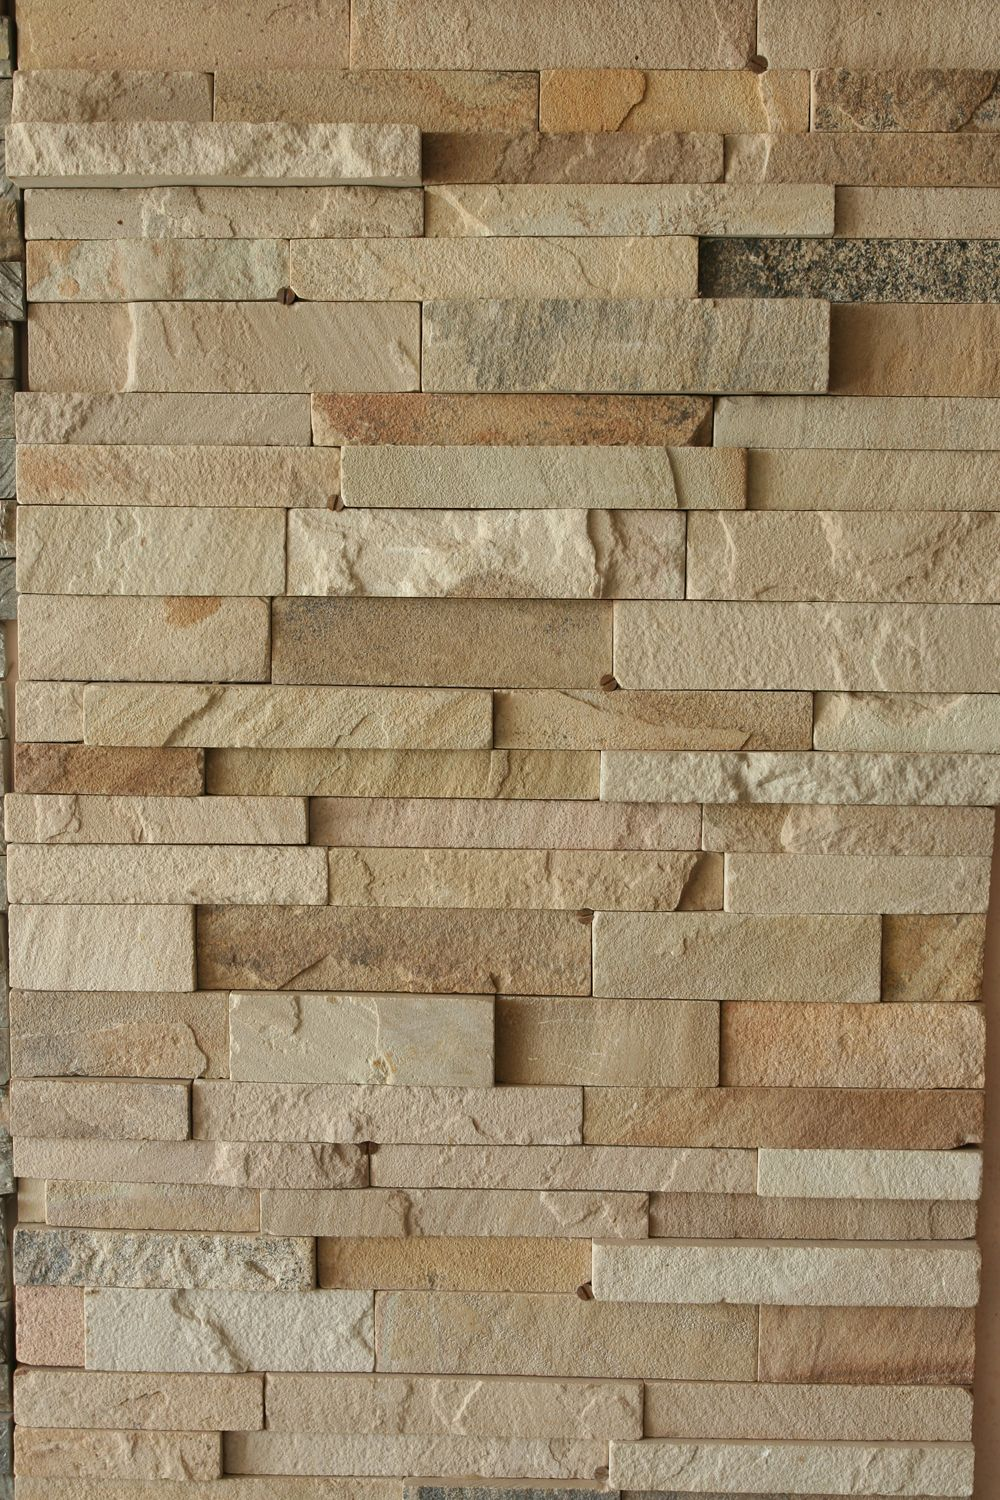 Wooden Cladding Wavy ~ The most extravagant wall cladding of mint sandstone